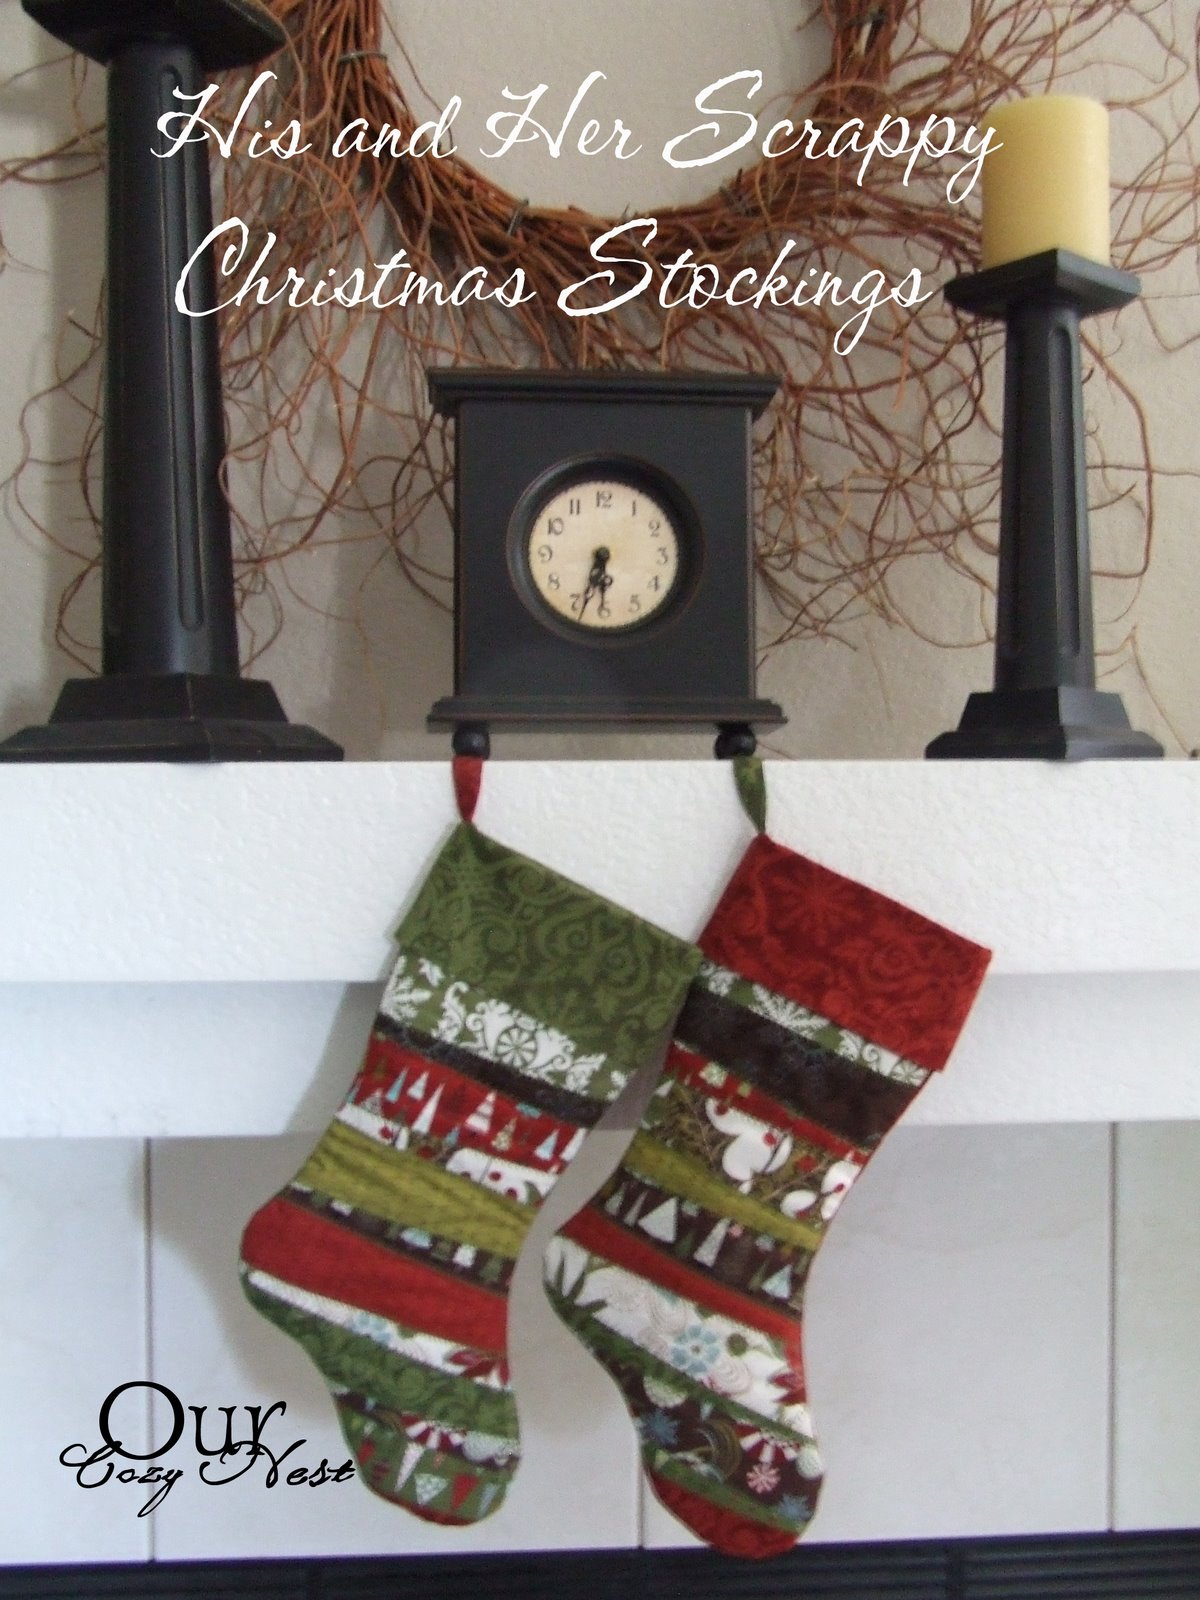 his and her scrappy christmas stockings